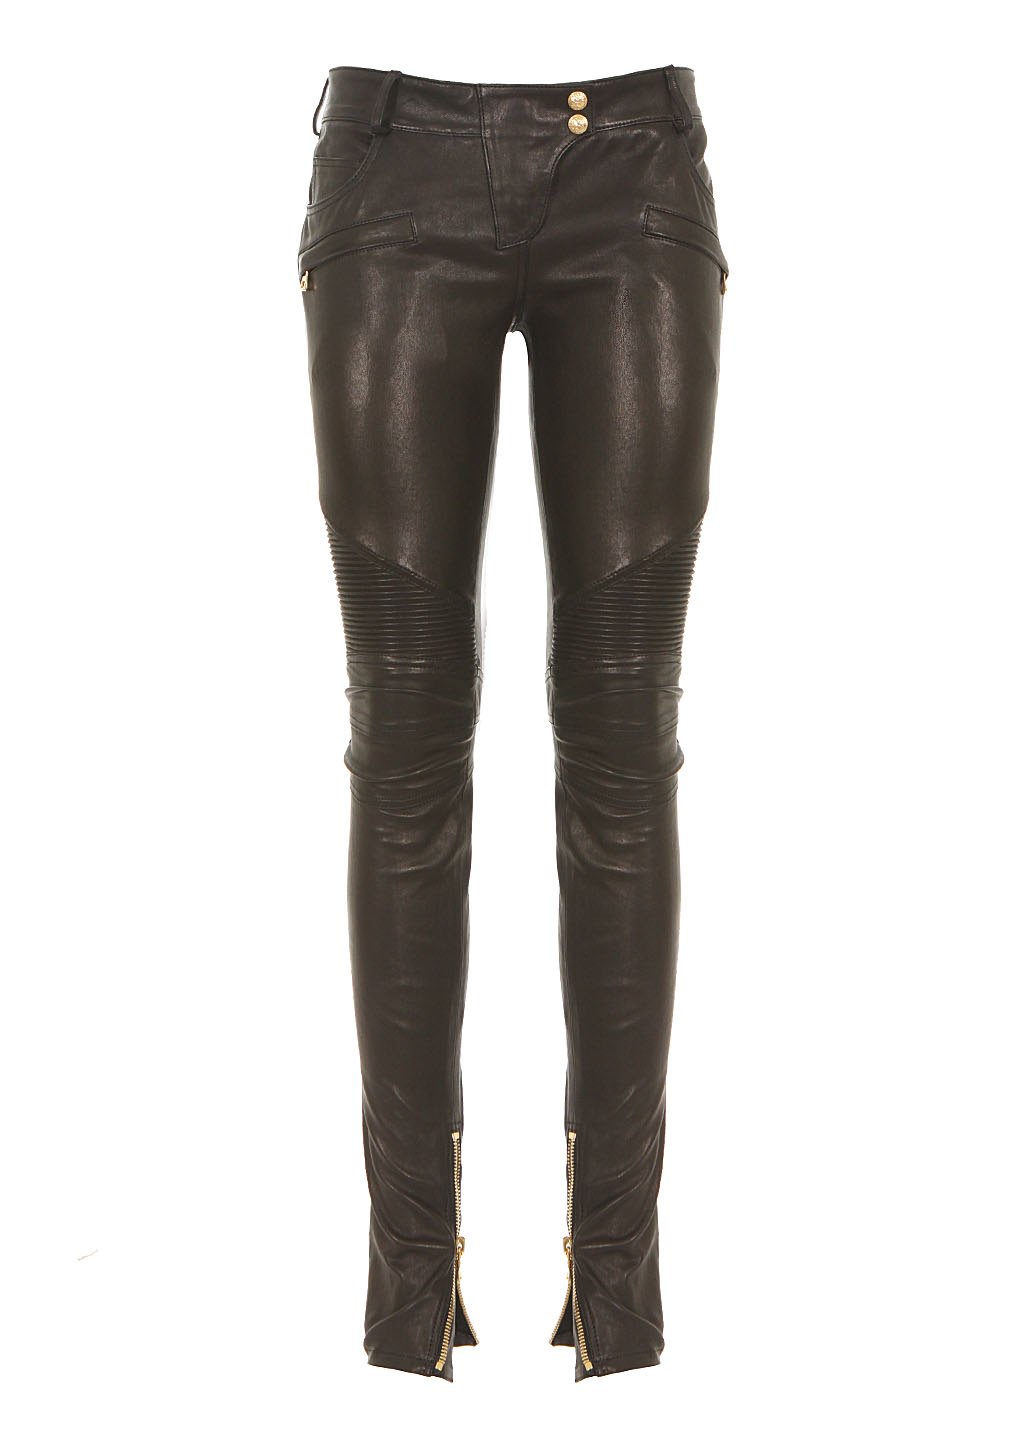 Leather motorcycle pants are typically a mainstay of the serious enthusiast and they come in a variety of shapes, sizes and styles to fit most budgets and applications. If you need any assistance in choosing men's motorcycle leather pants, please contact us via phone or email.